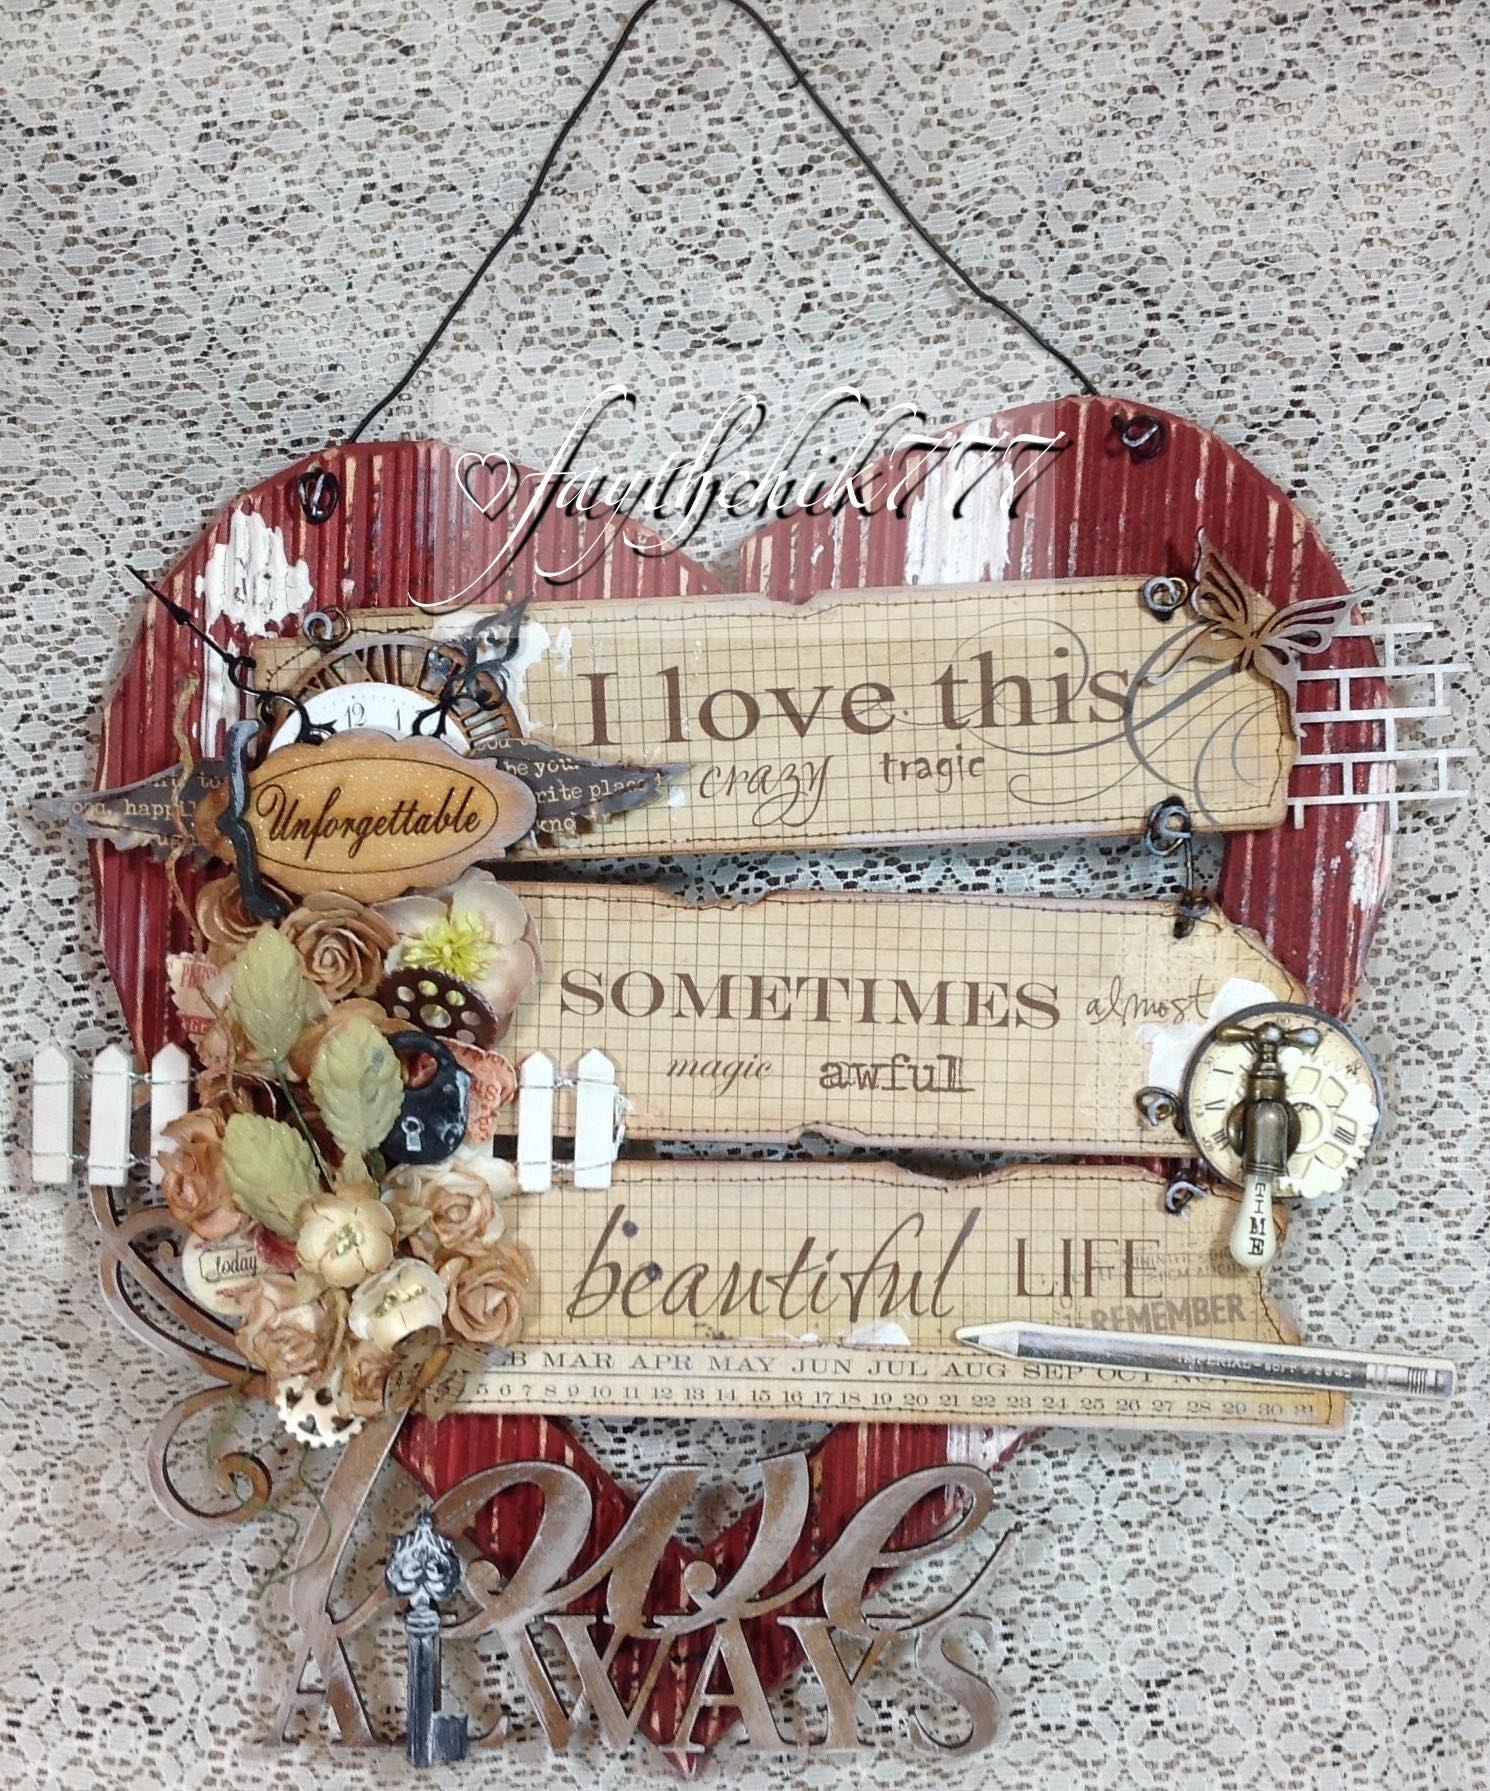 Shabby Chic Wall Art Gdt Project For Sacrafters – Youtube Pertaining To Shabby Chic Wall Art (Image 15 of 20)